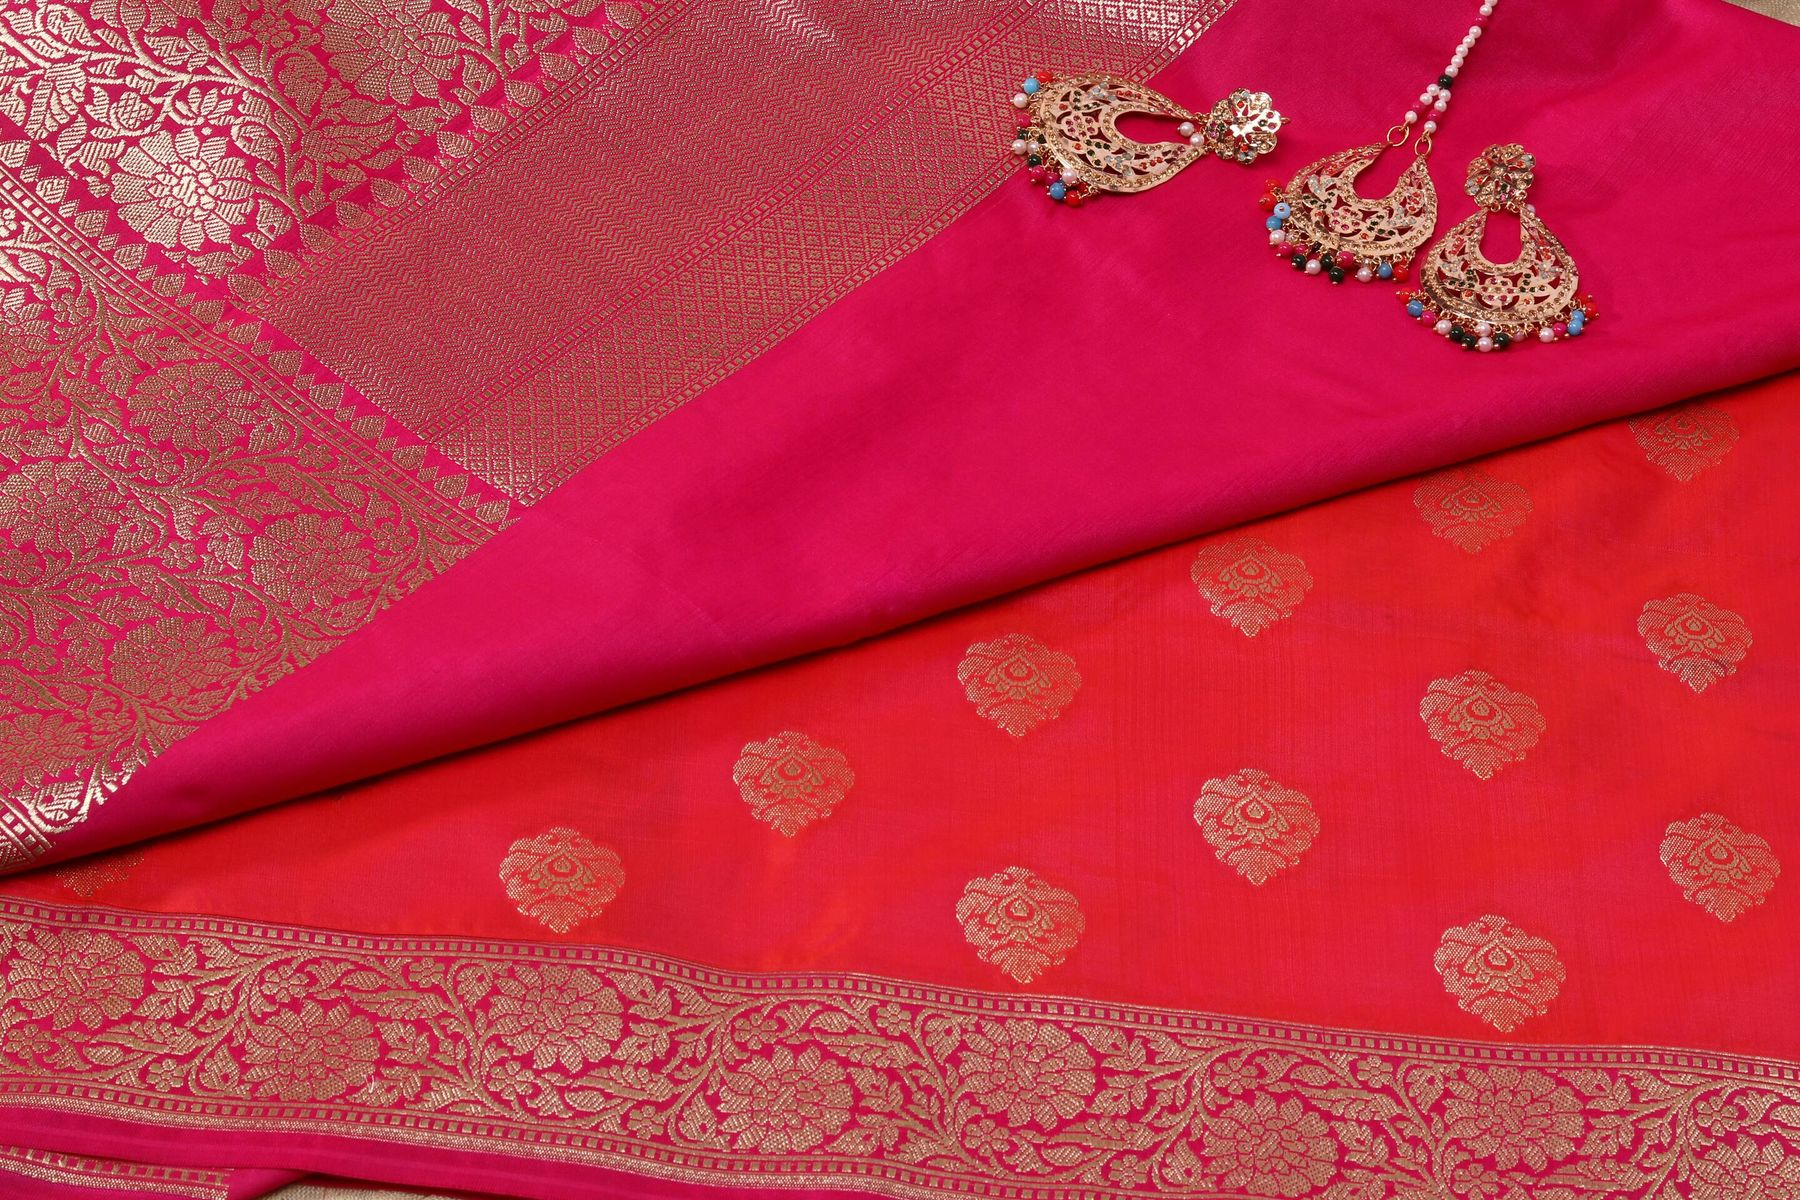 How to Remove Mud Stains from Your Saree | Cleanipedia